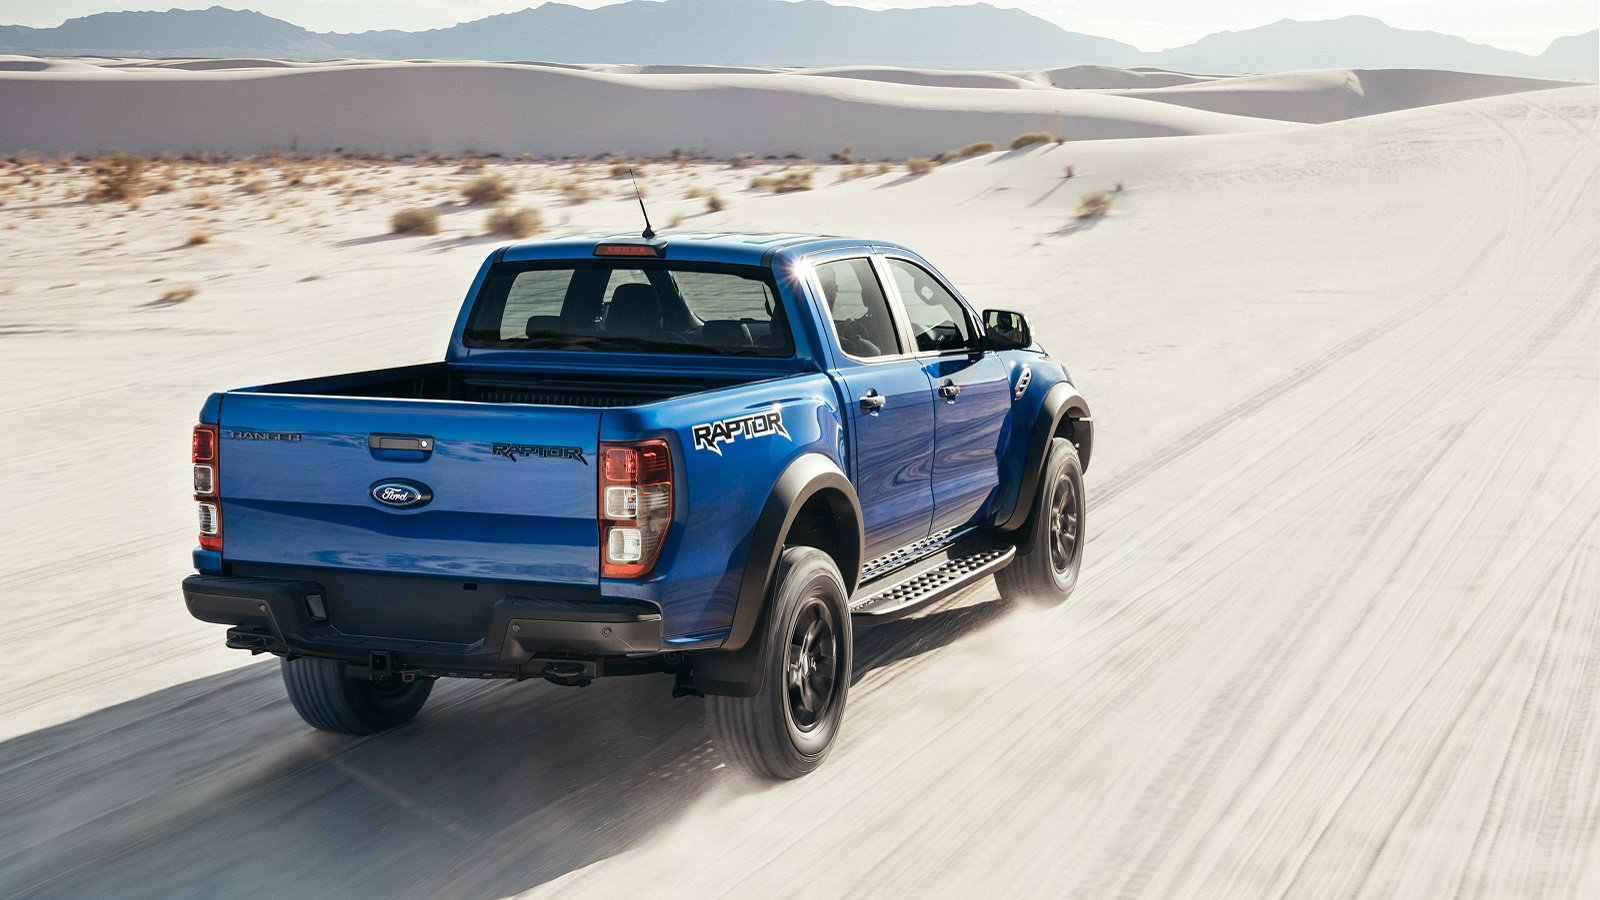 The New Ranger Raptor Should be Headed to the U.S., but With What Engine?